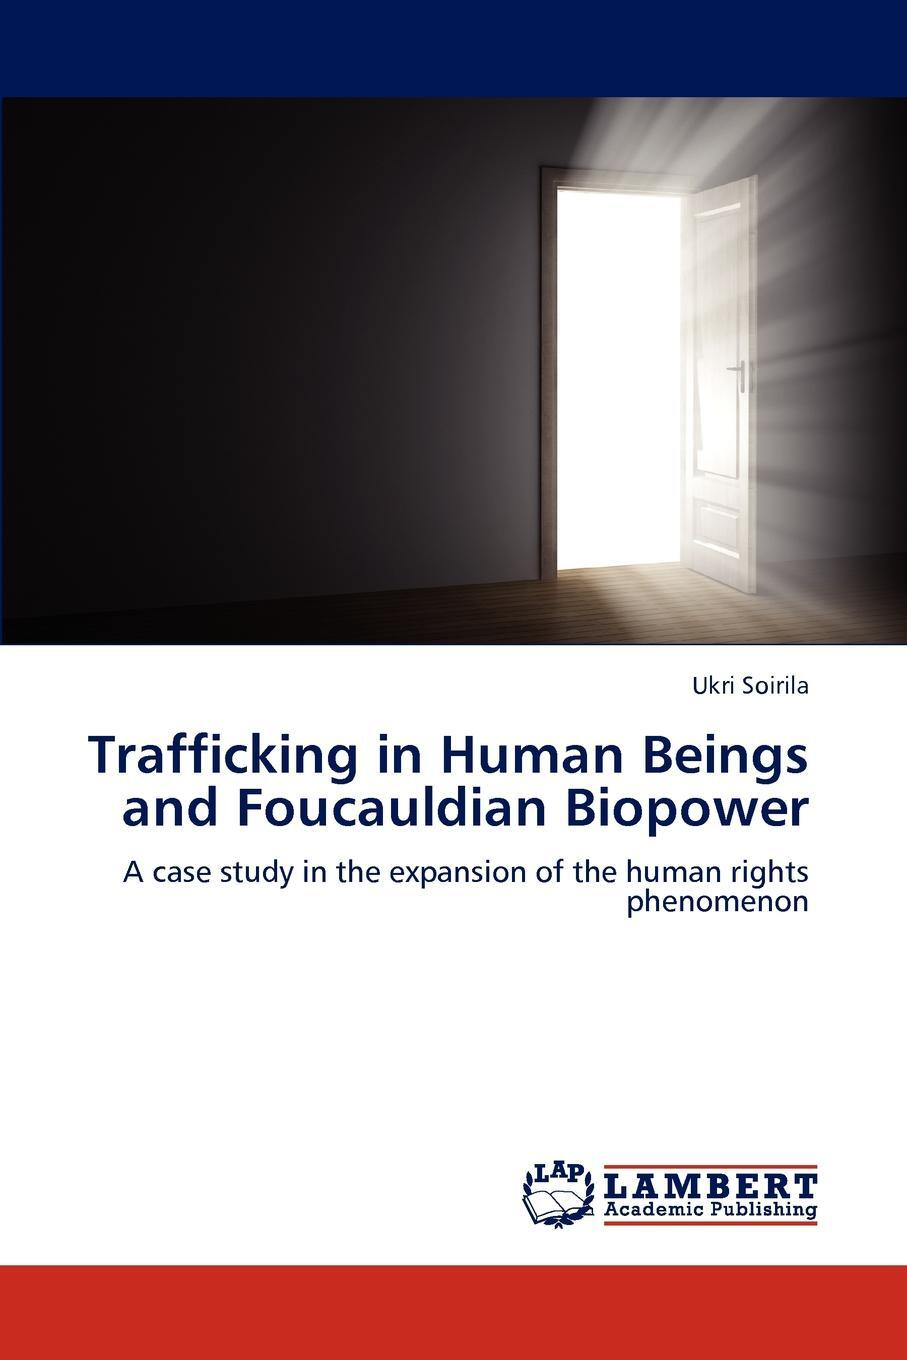 Trafficking in Human Beings and Foucauldian Biopower. Ukri Soirila